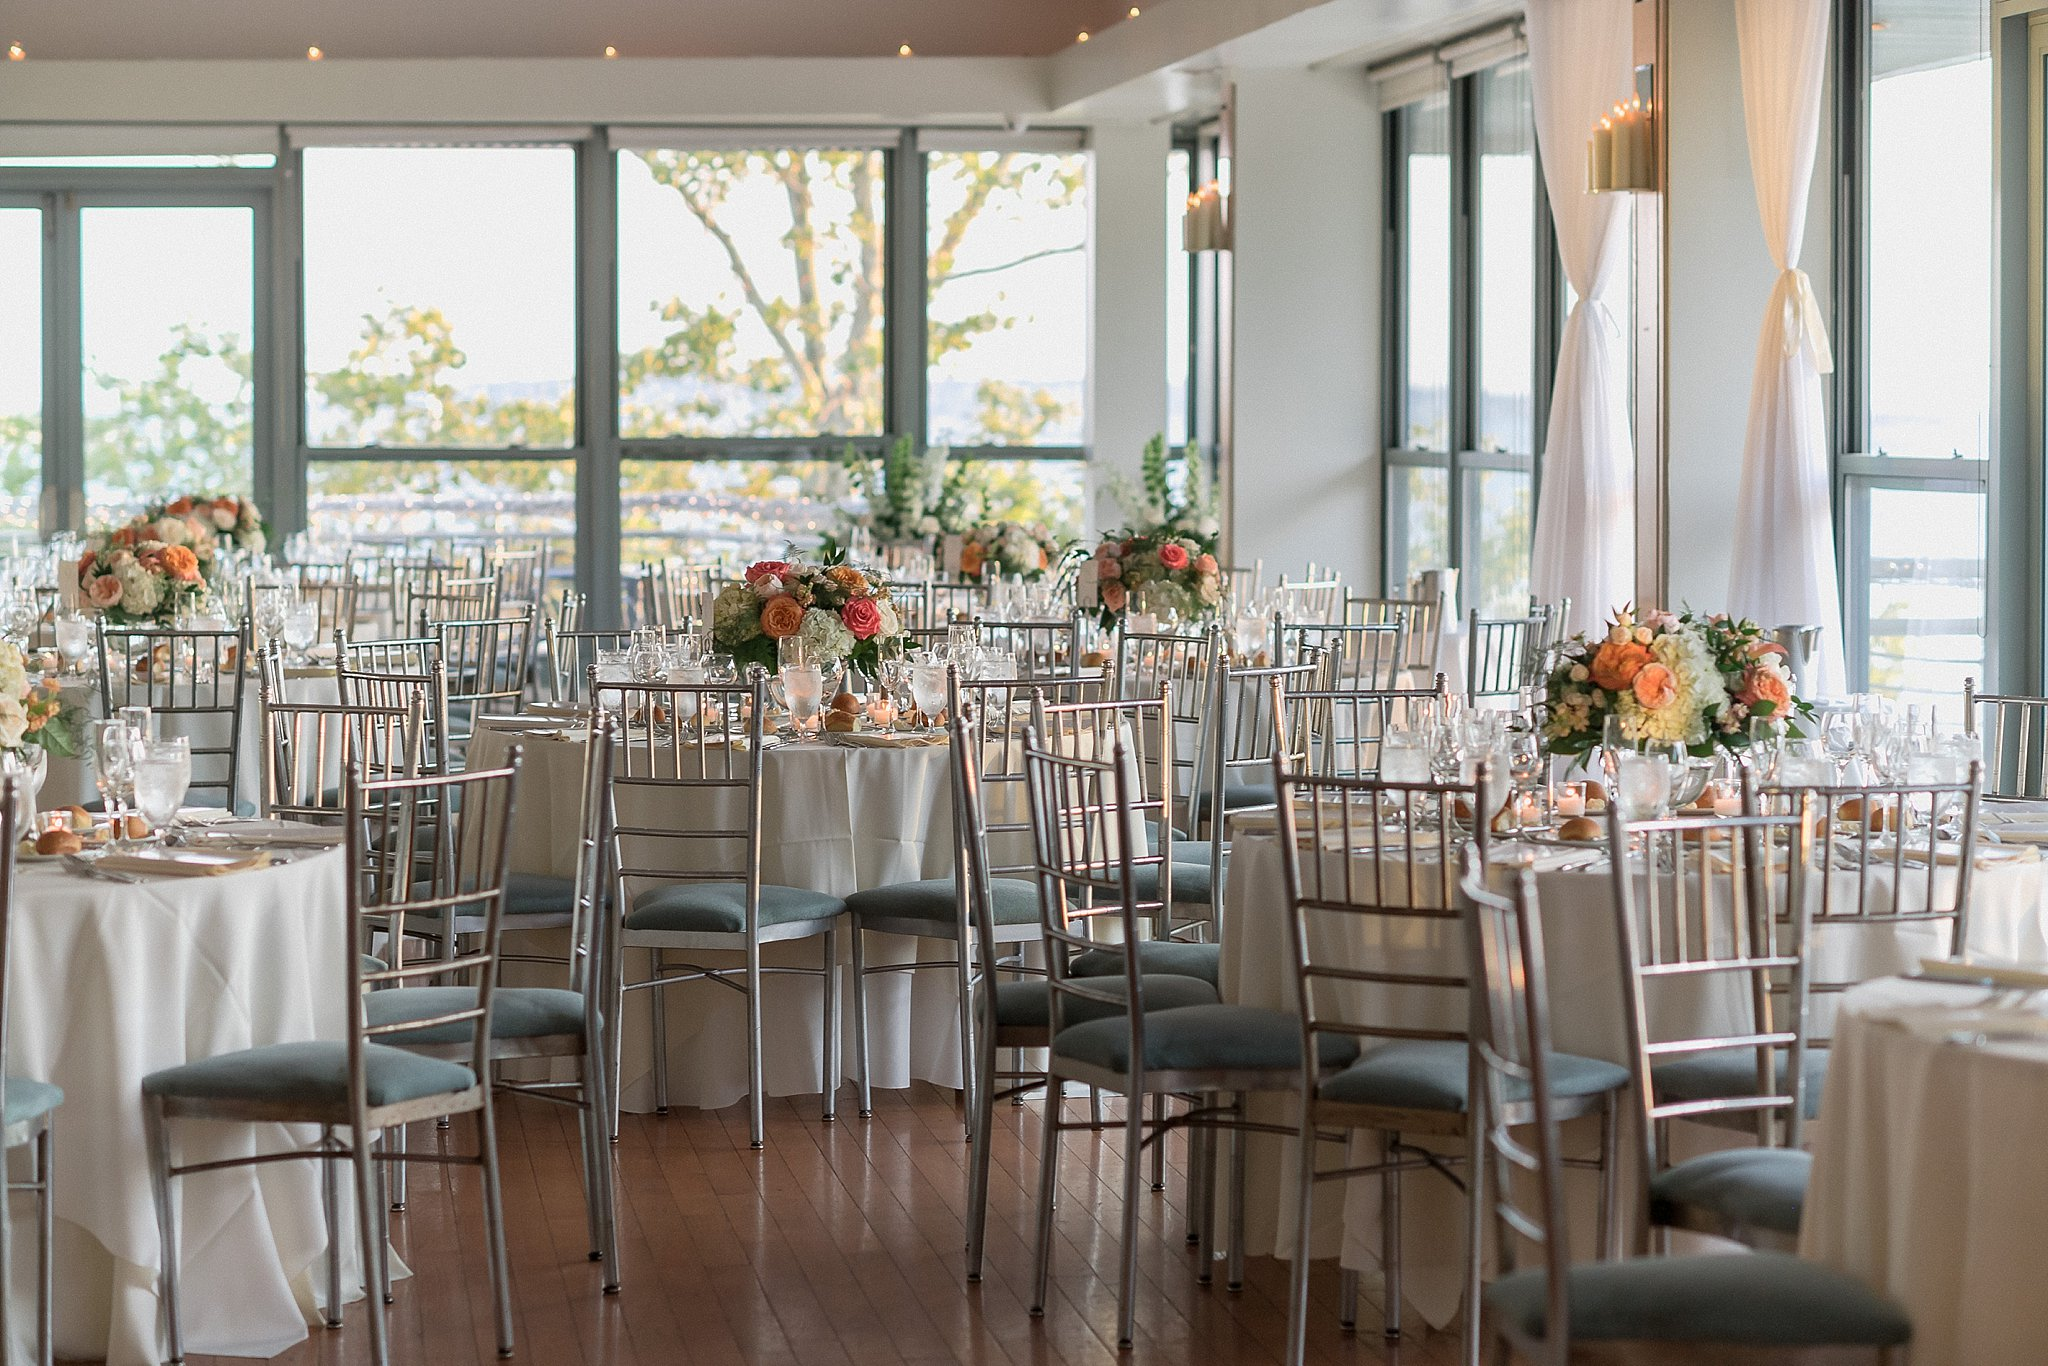 Wedding Reception at Battery Garden photographed by Susan Shek Wedding Photography in New York City, NY.